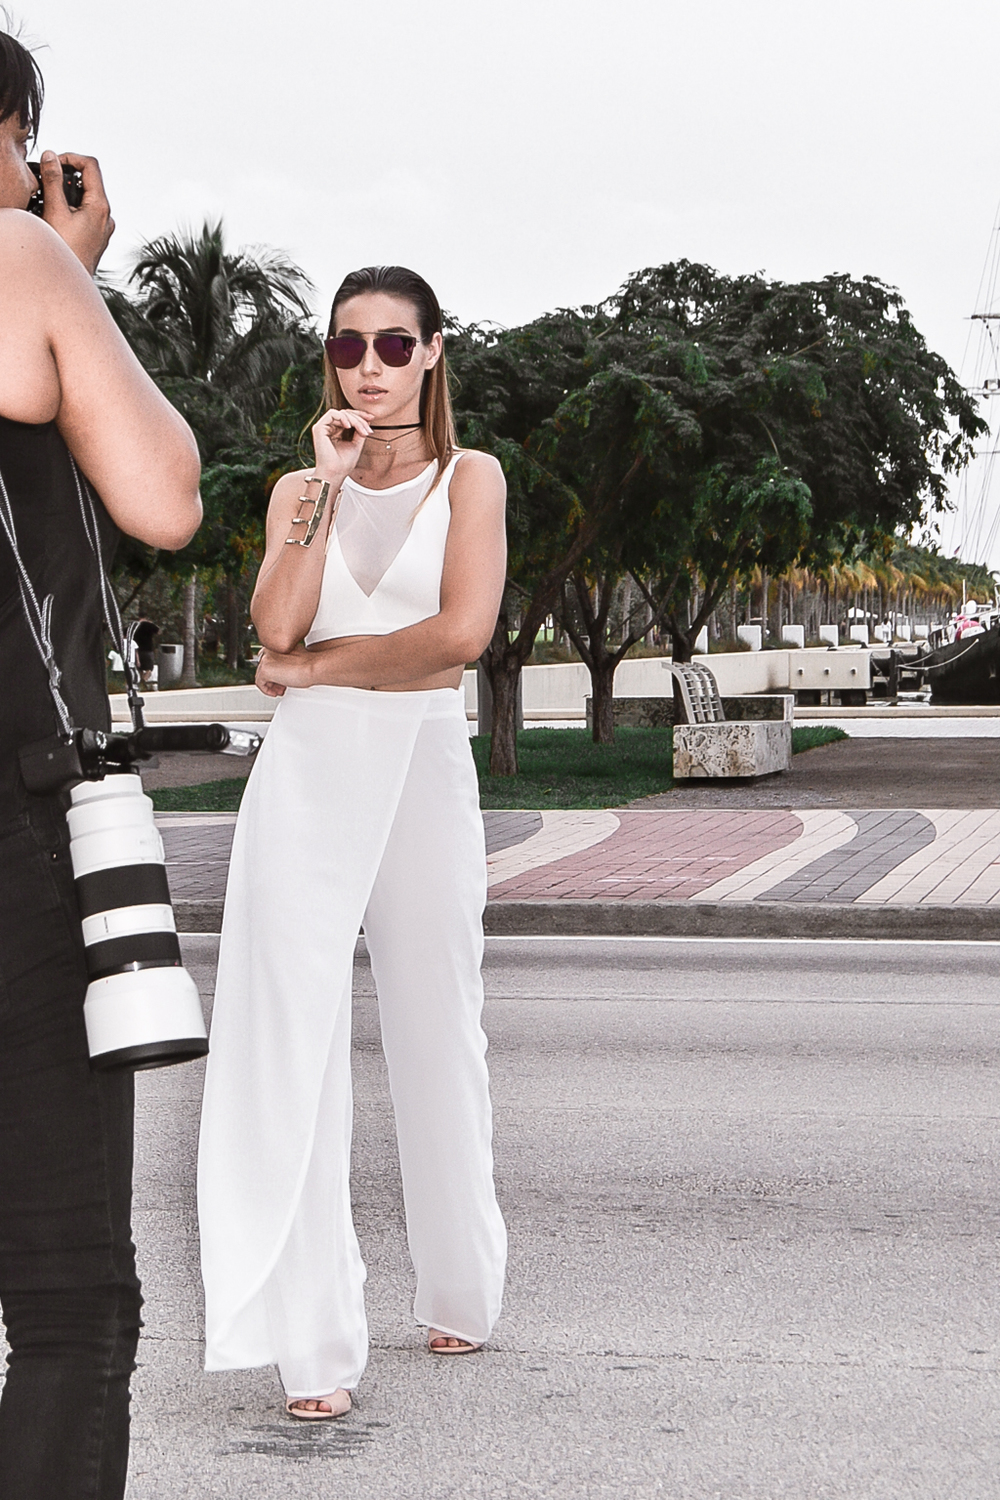 behind-the-scenes-style-link-miami-illy-perez-fashion-photography-9.jpg